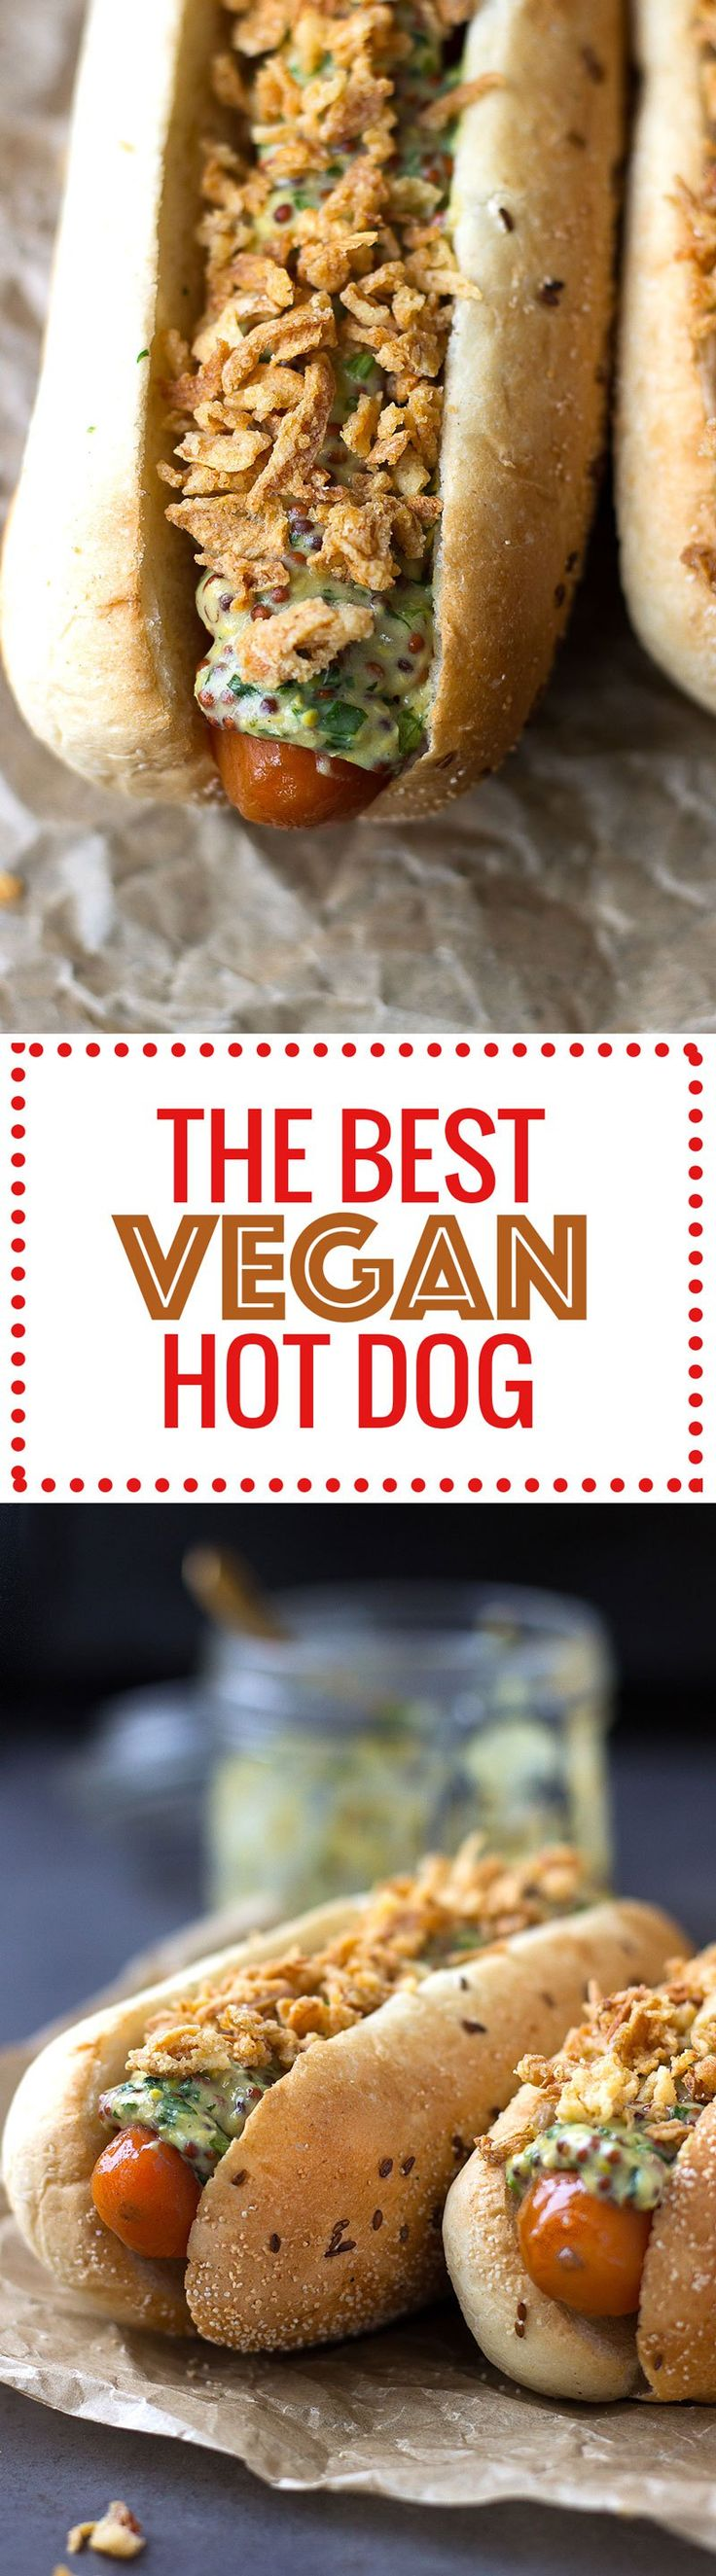 The BEST vegan hot dog! It's gluten free, nut free and soy free as well! And easy peasy to make! Get the recipe at nutritionistmeetschef.com